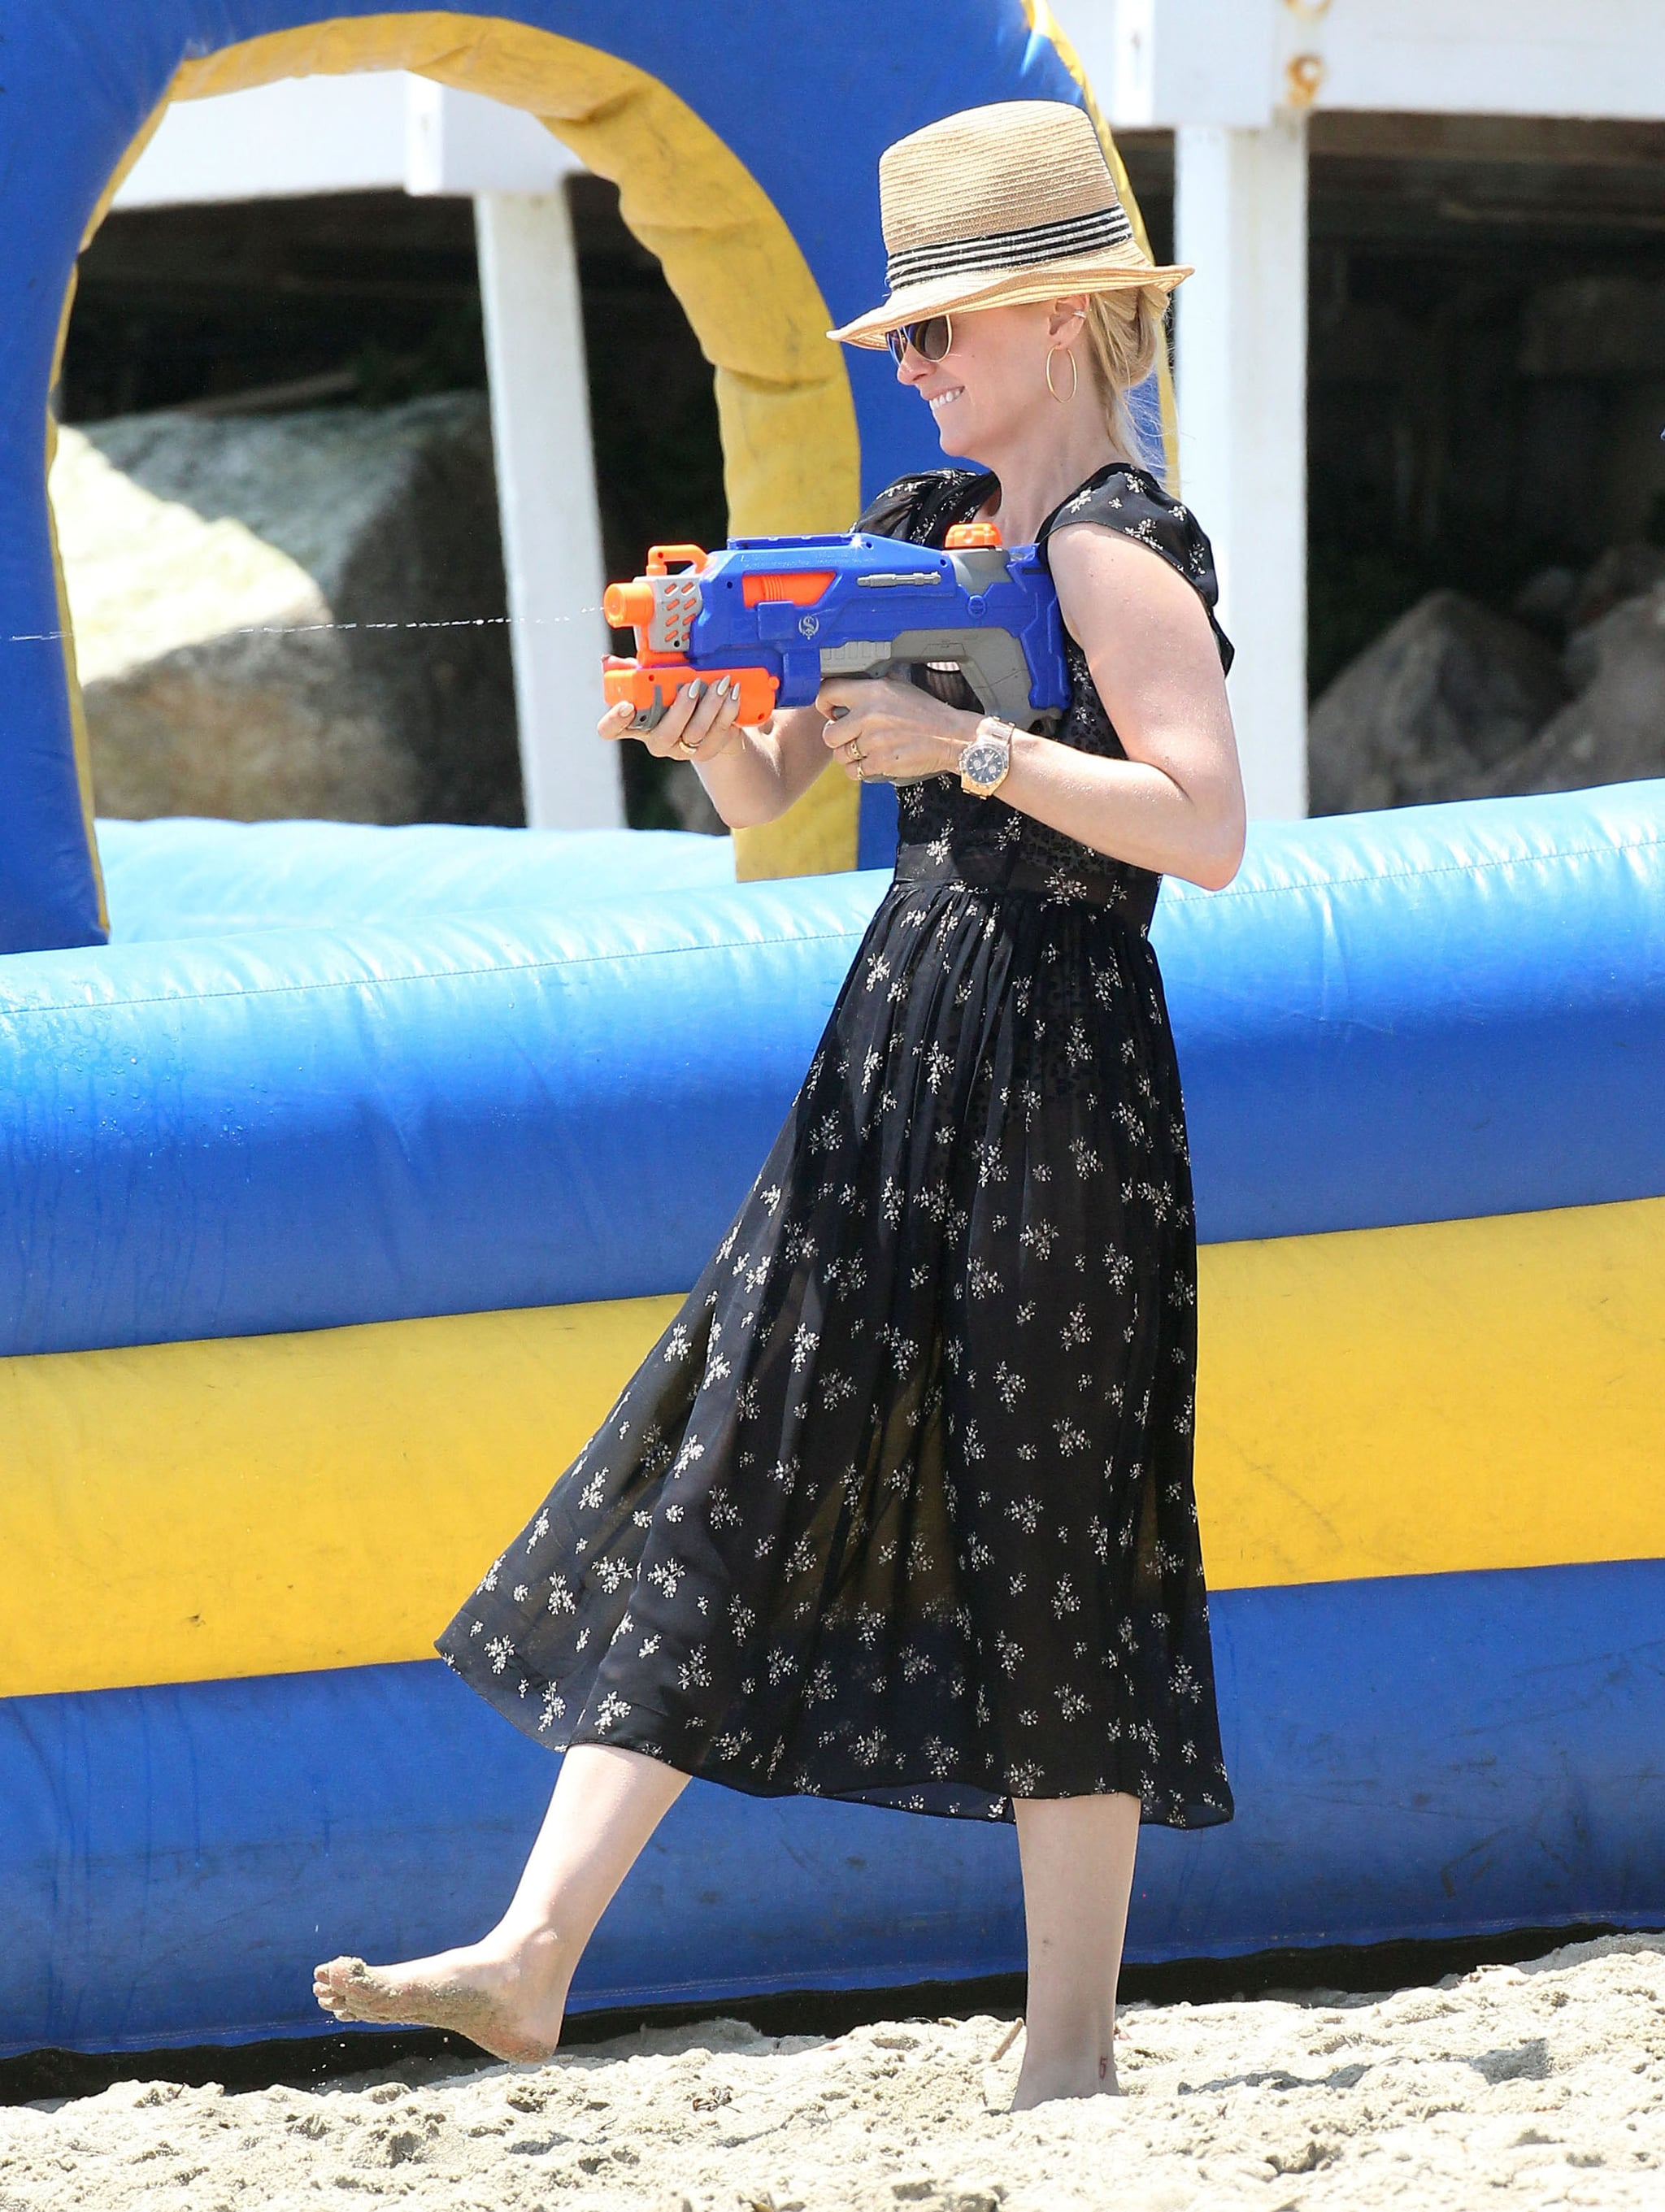 January Jones played with a squirt gun.